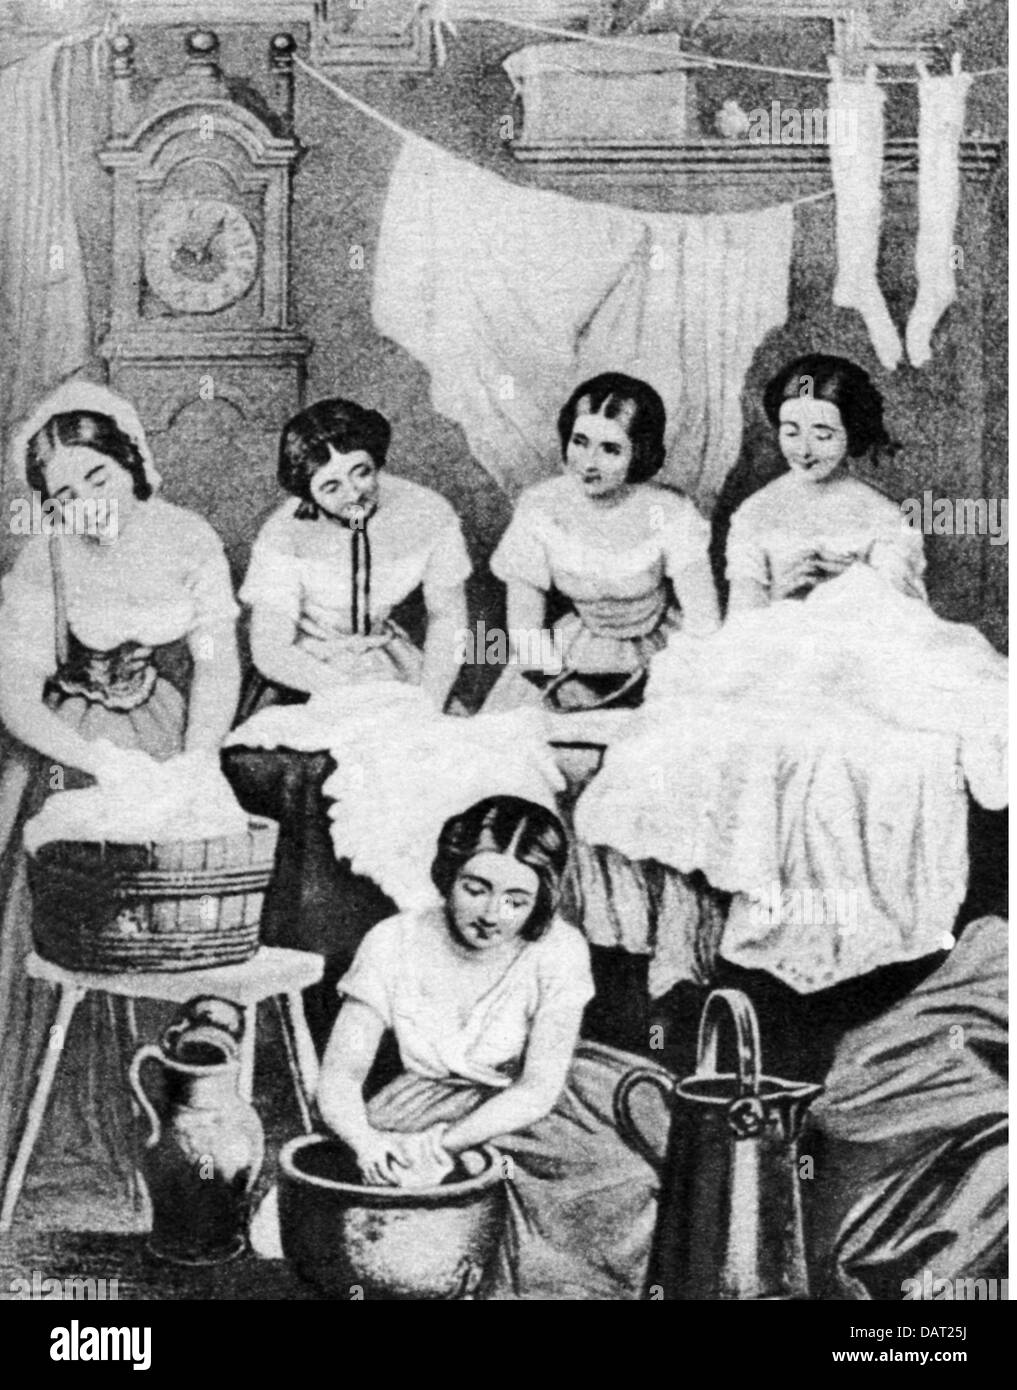 life of women in 19 century 19th century advice for single women: 'sexual indulgences should be kept  a married life conduces to such correctness of living as tends to.